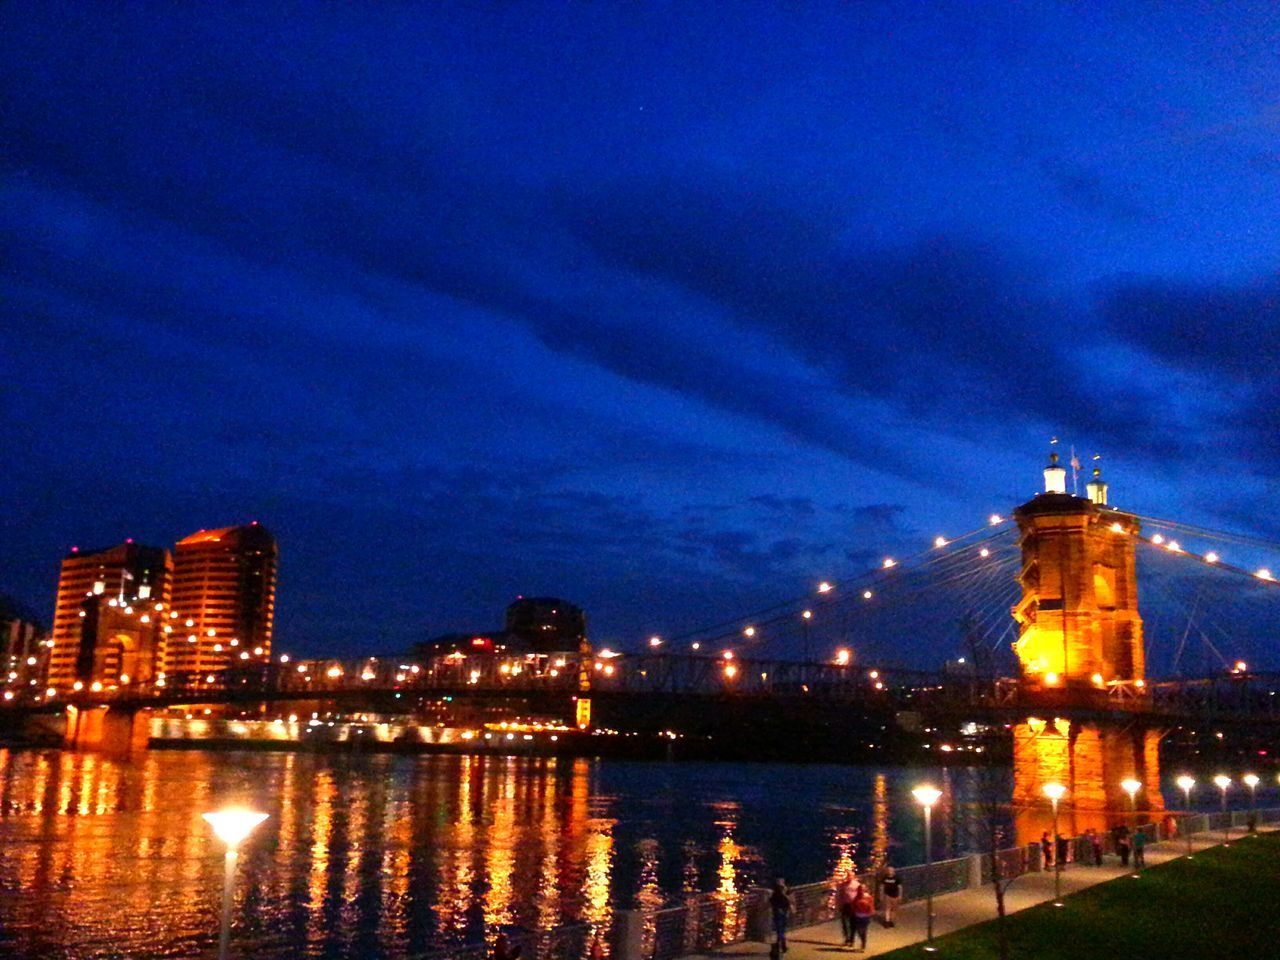 Low Angle View Of John A Roebling Suspension Bridge Over Ohio River At Night